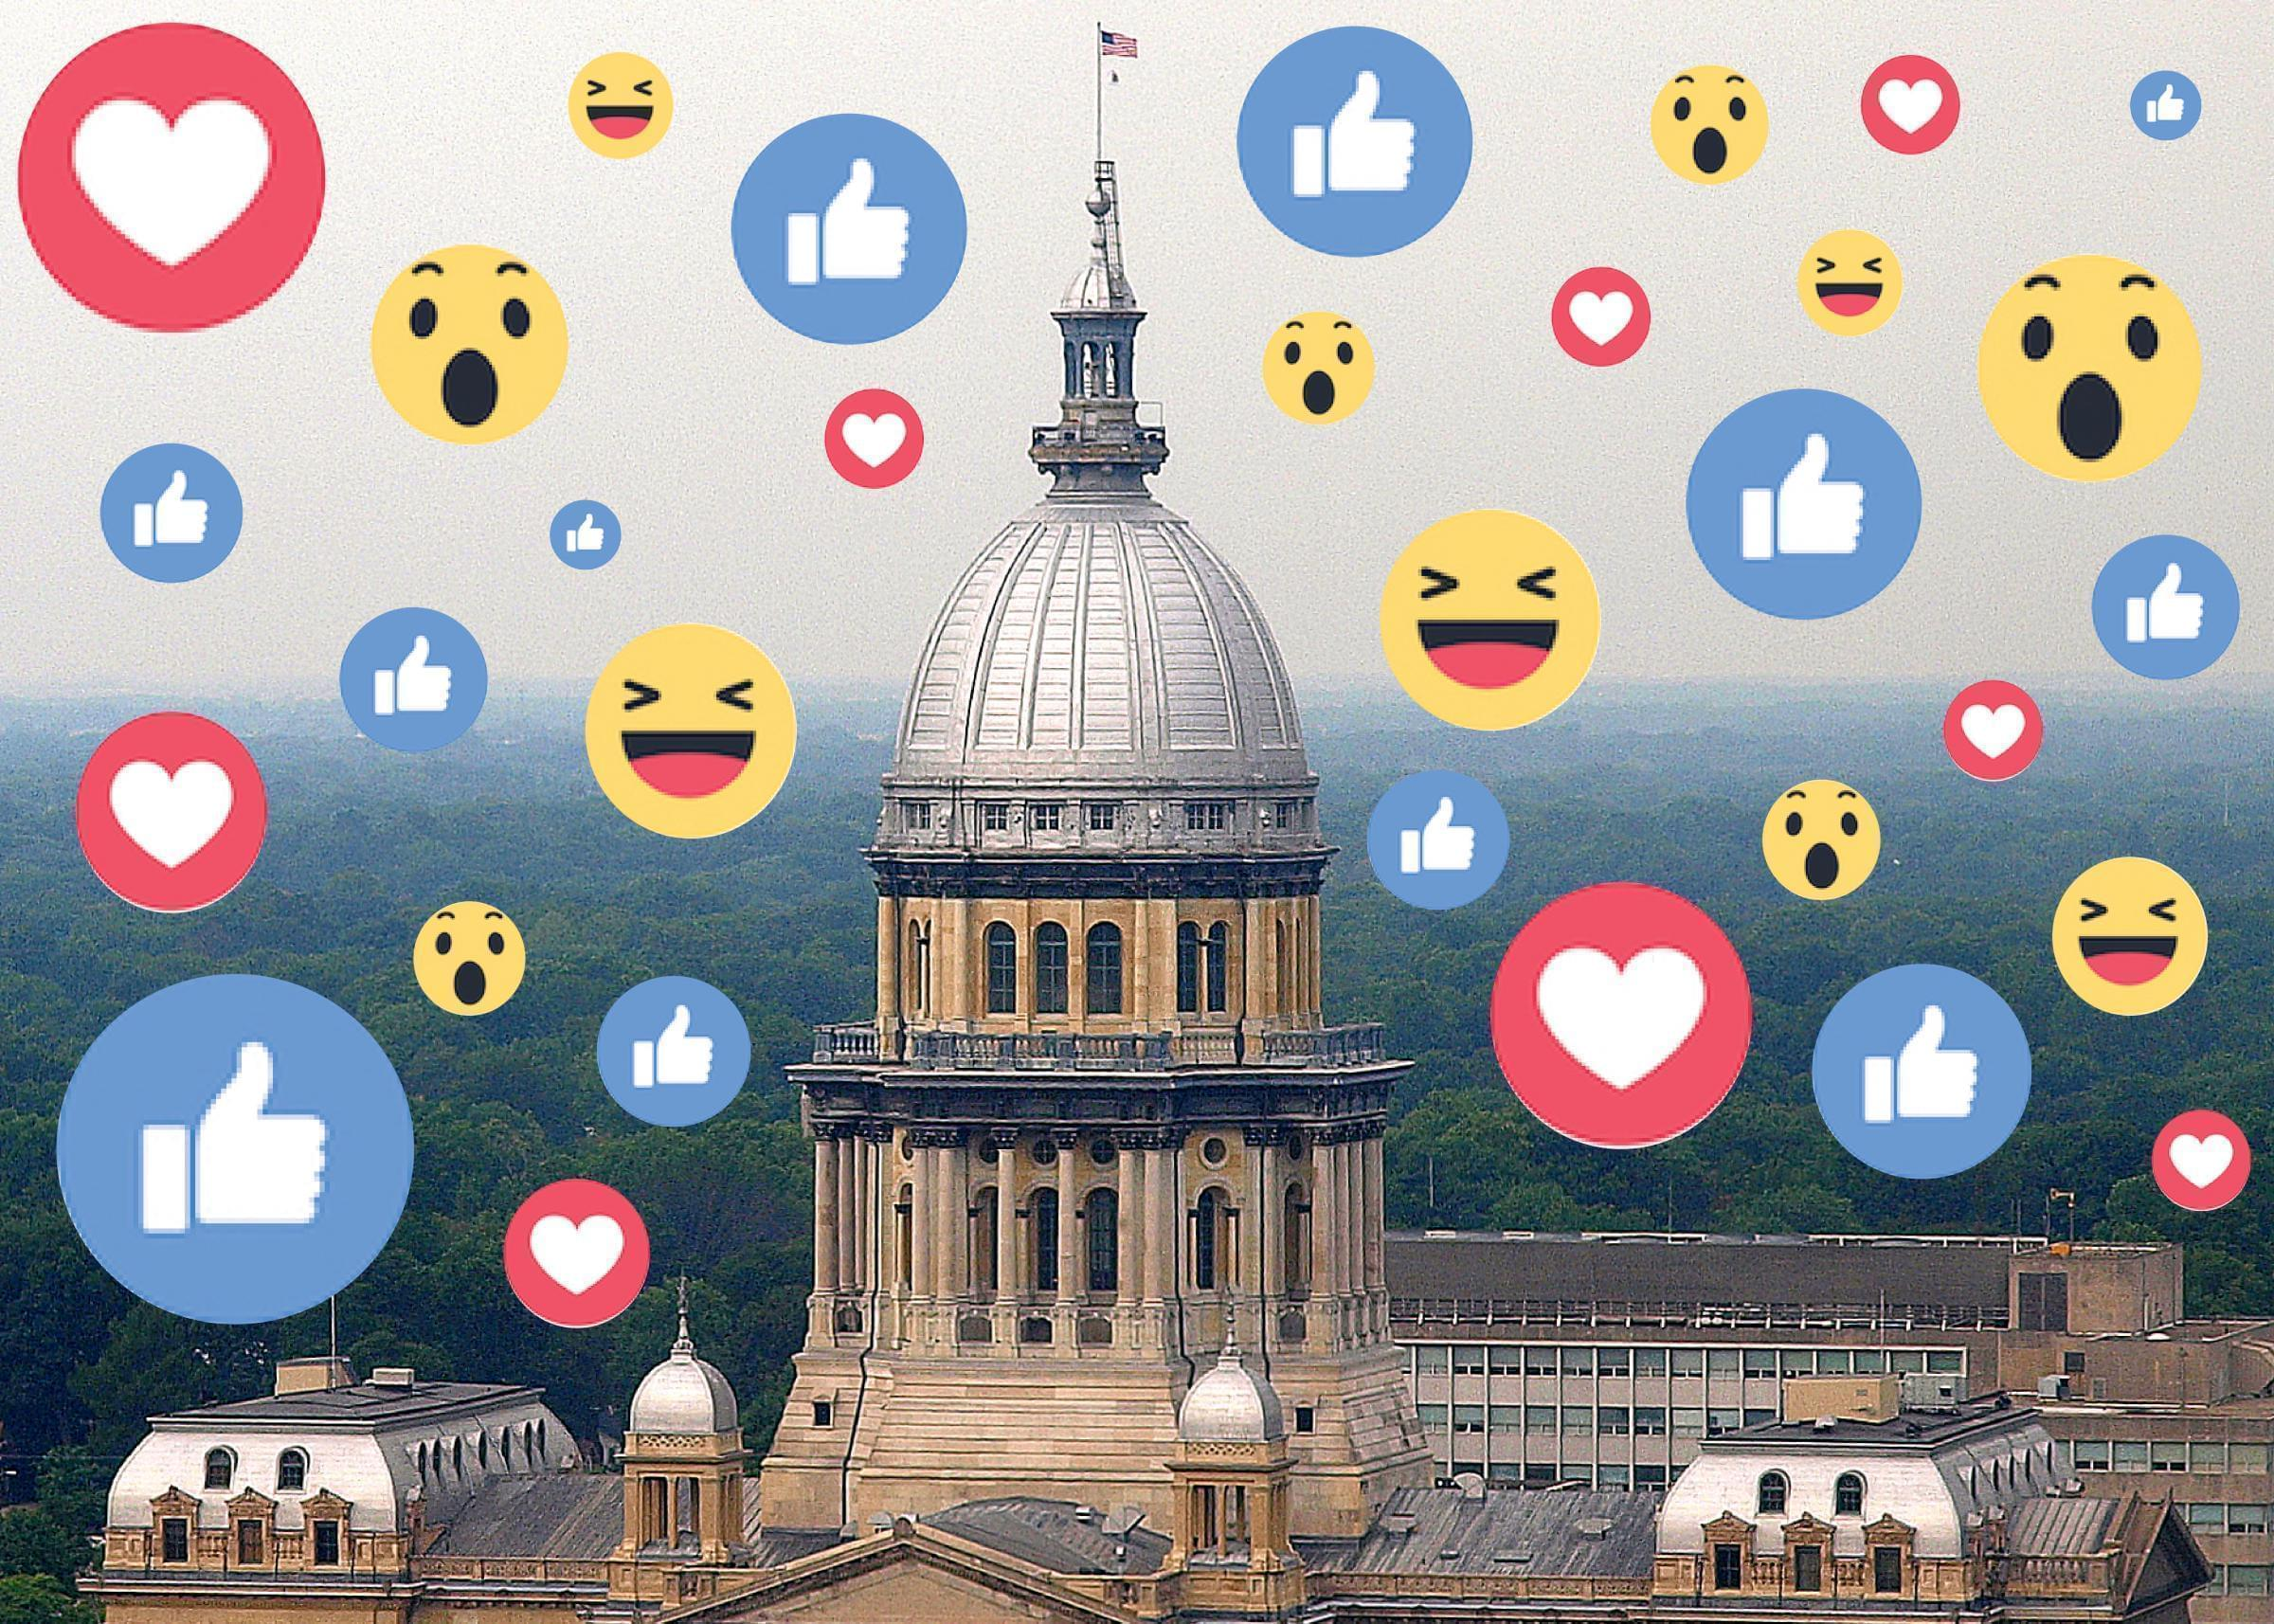 Illustration of state capitol with Facebook emojis.